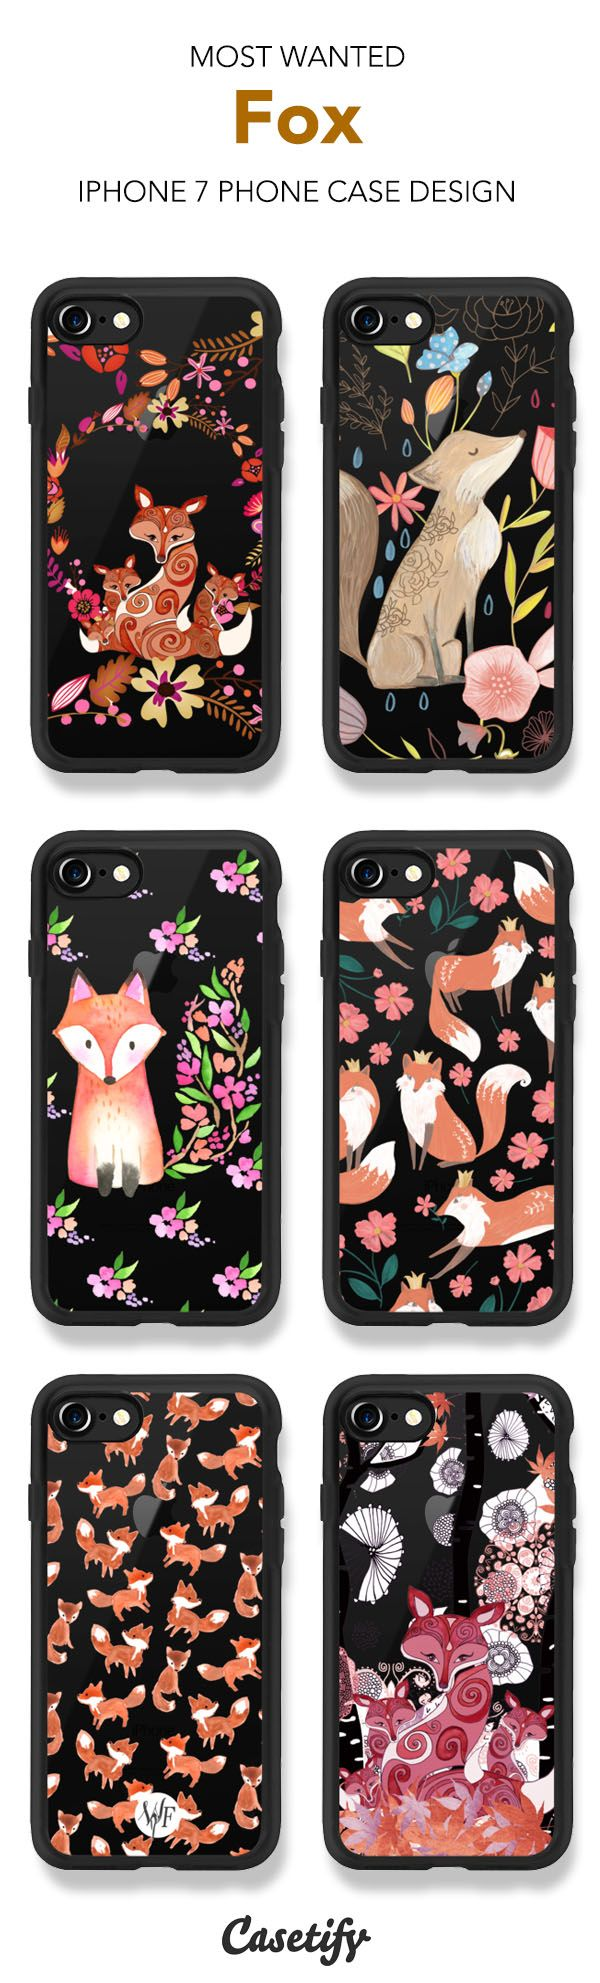 Most wanted Fox iPhone 7 and iPhone 7 Plus case. Shop them all here >   https://www.casetify.com/artworks/LNfvWr0iFD